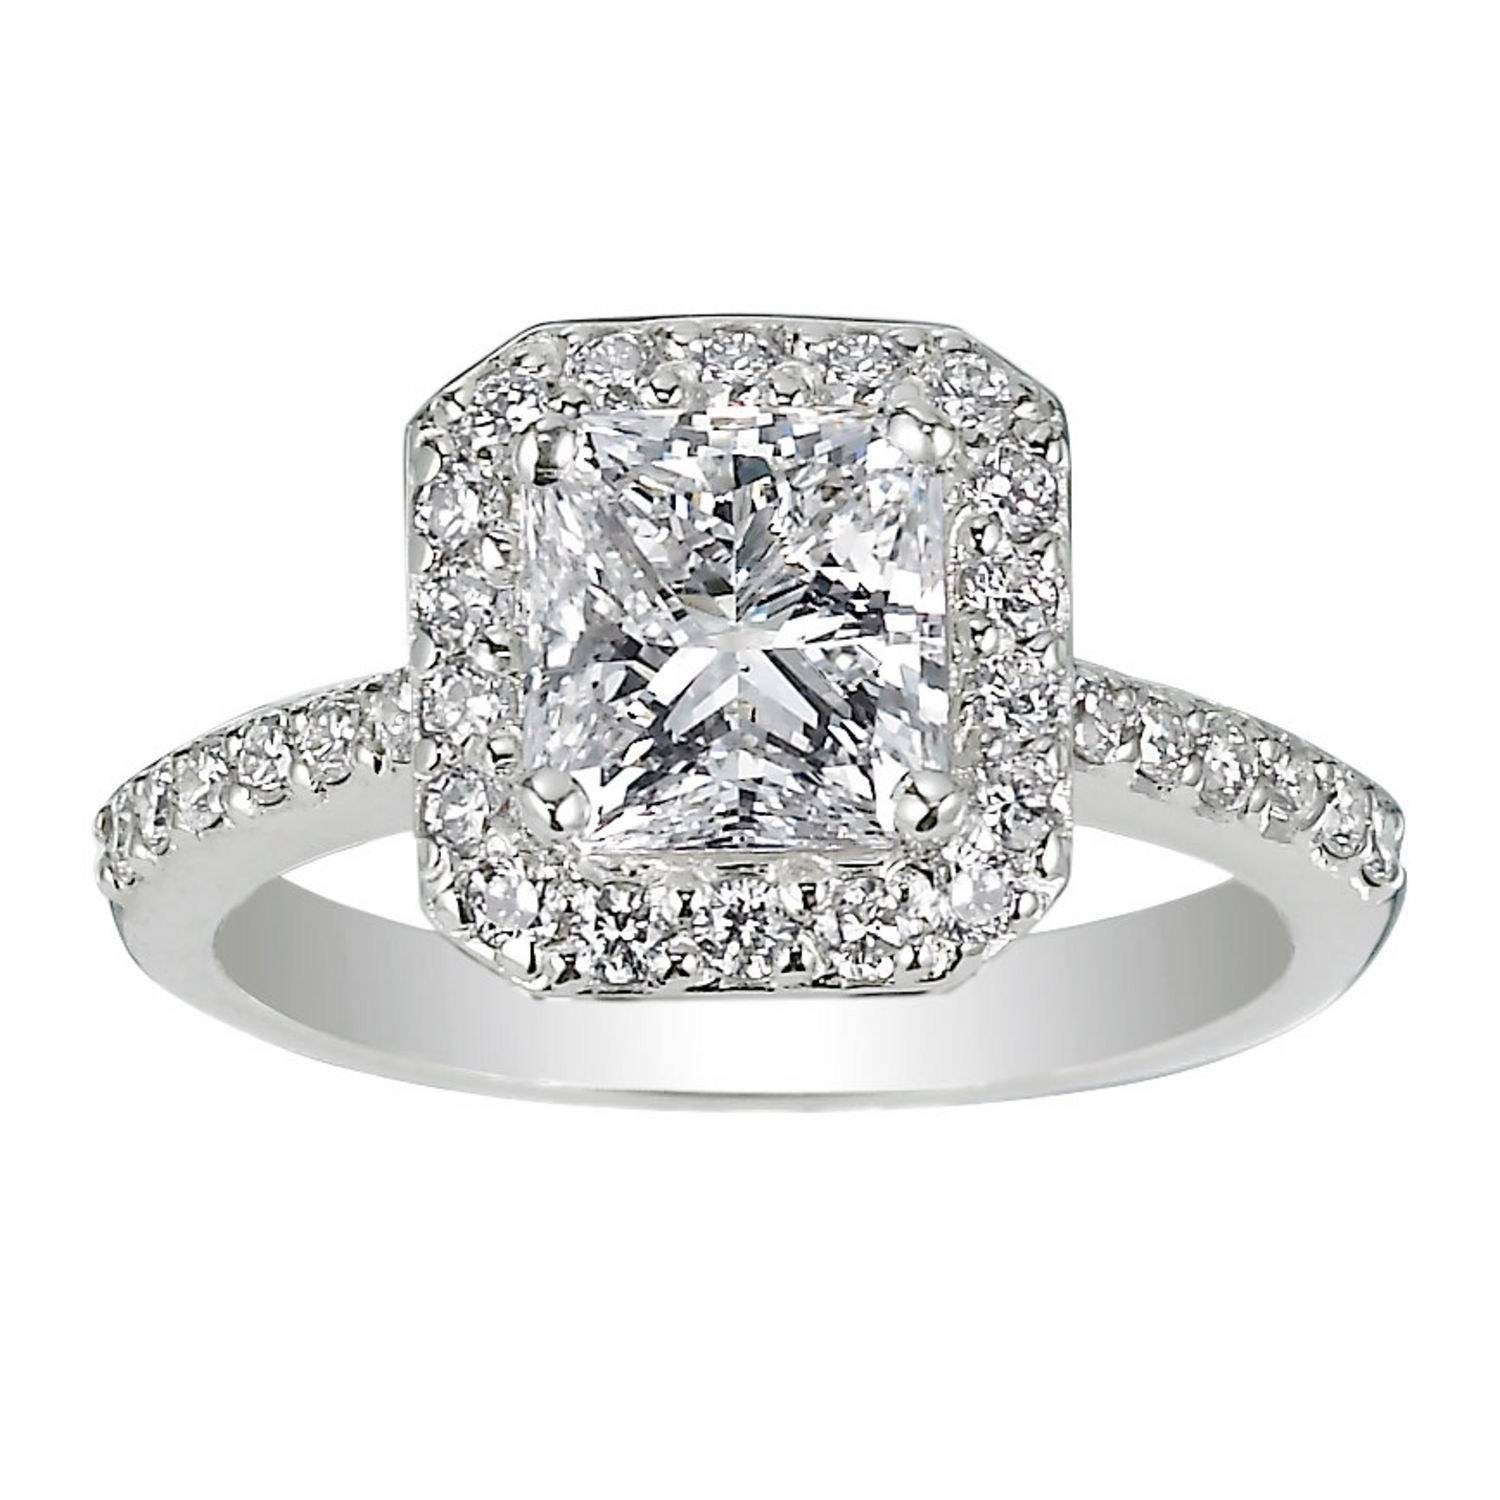 62 Diamond Engagement Rings Under $5,000 | Glamour Intended For Diamond Wedding Rings (View 3 of 15)